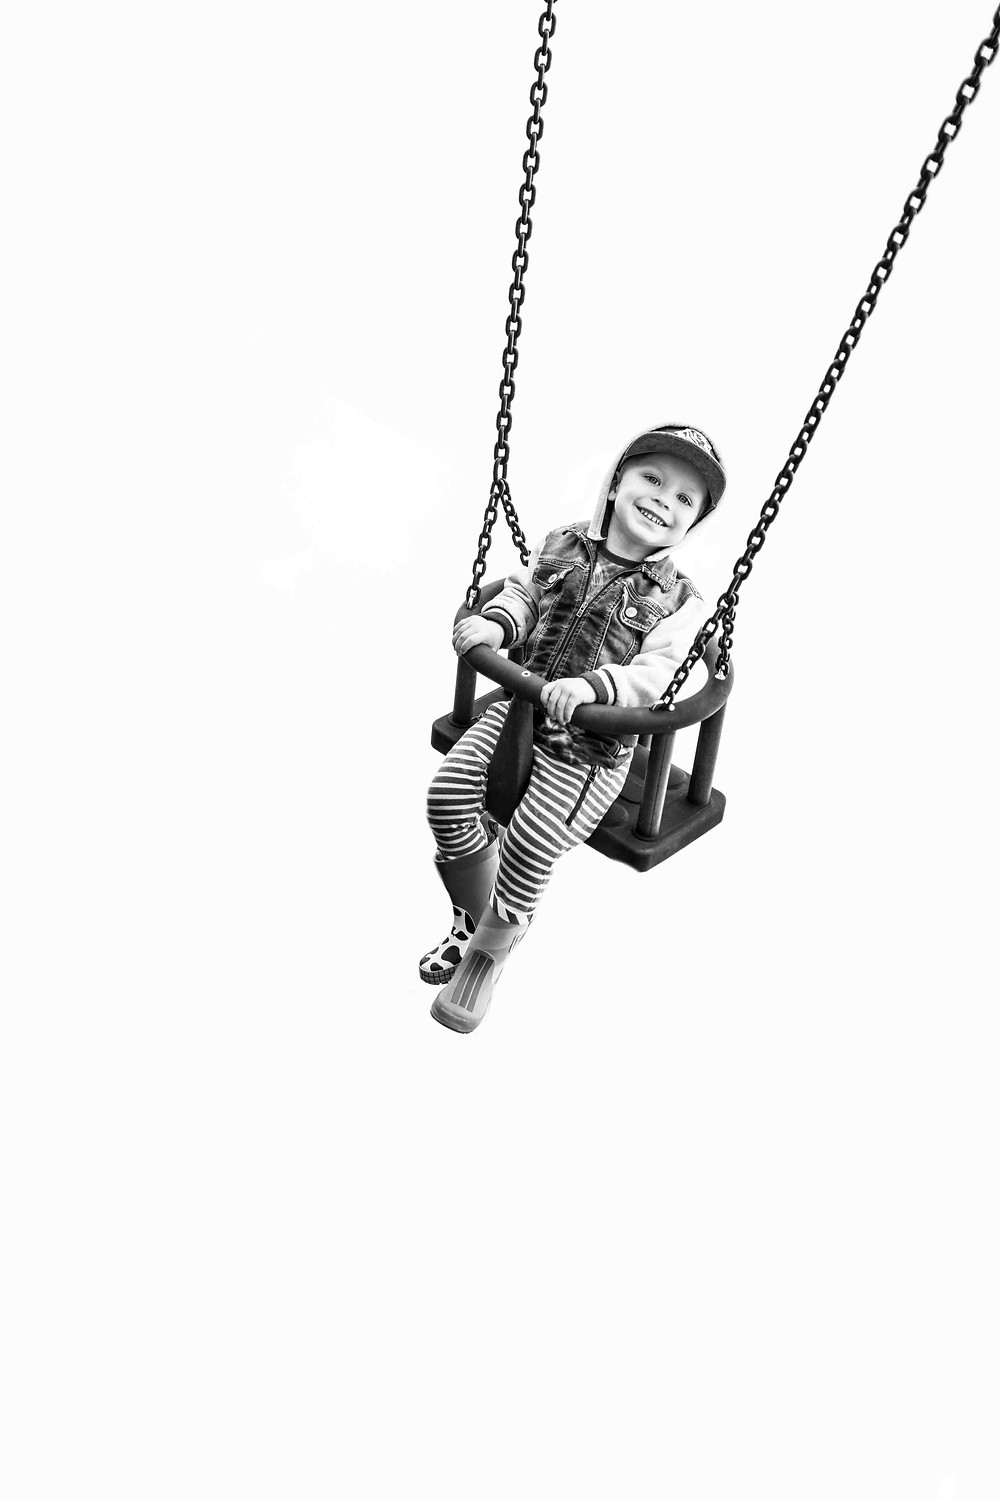 Best-aberdeen-family-children-photographer-montrose-arbroath-aberdeenshire-monochrome-black-and-white-boy-on-swing-at-laurencekirk-playpark